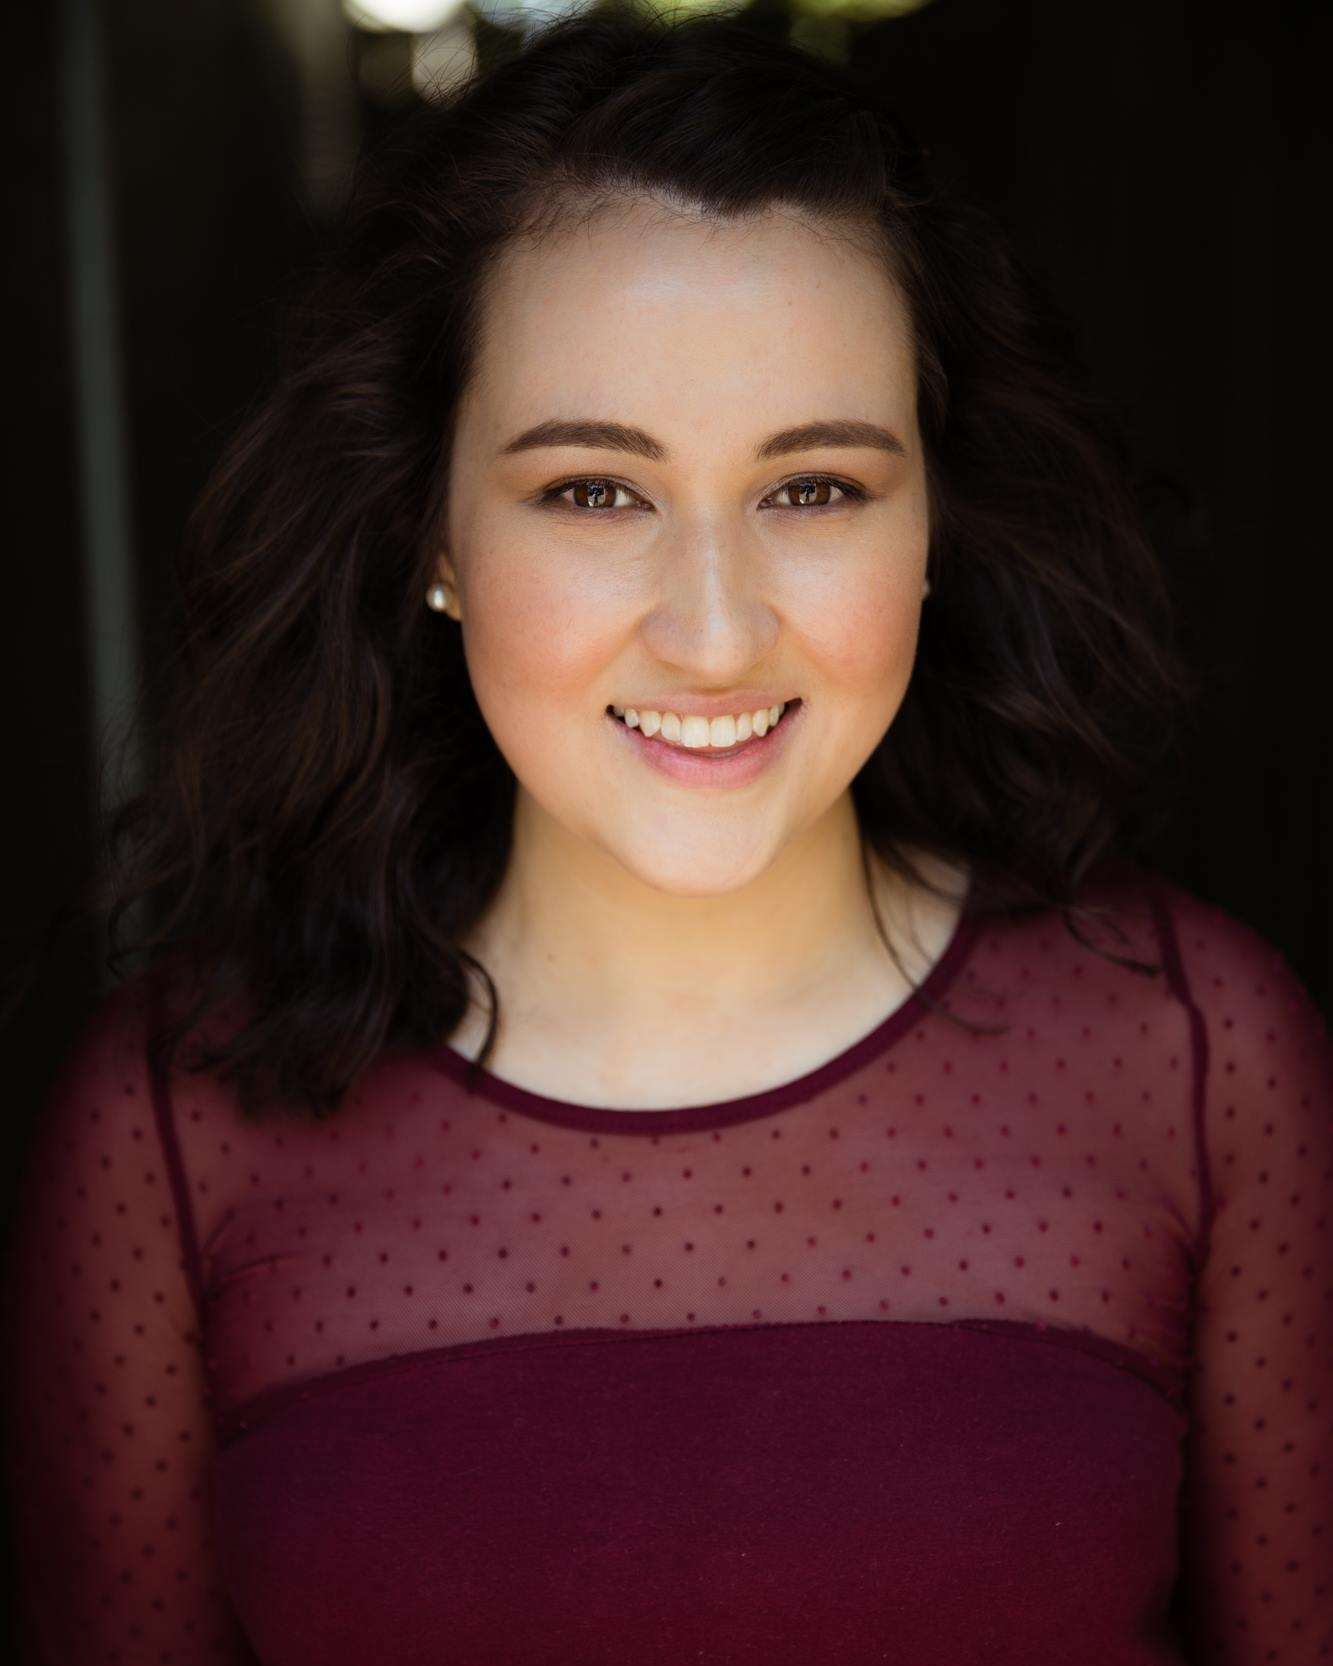 LAURIE-ANN WOOLEY - I came to Jen looking to gain more confidence as a performer and focus on vocal technique. Jen has really helped me embrace what makes my voice unique and encourages me to go further than I think I can. Vocal technique, text and musical analysis, performance and audition technique, repertoire and mindset are just some of the skills I get to work on with Jen.She has an invaluable wealth of knowledge, helping me to work through all my queries and question in order to reach my goals. Her passion is infectious and I leave every lesson excited and motivated to put everything into practice. I would recommend Jen to all!